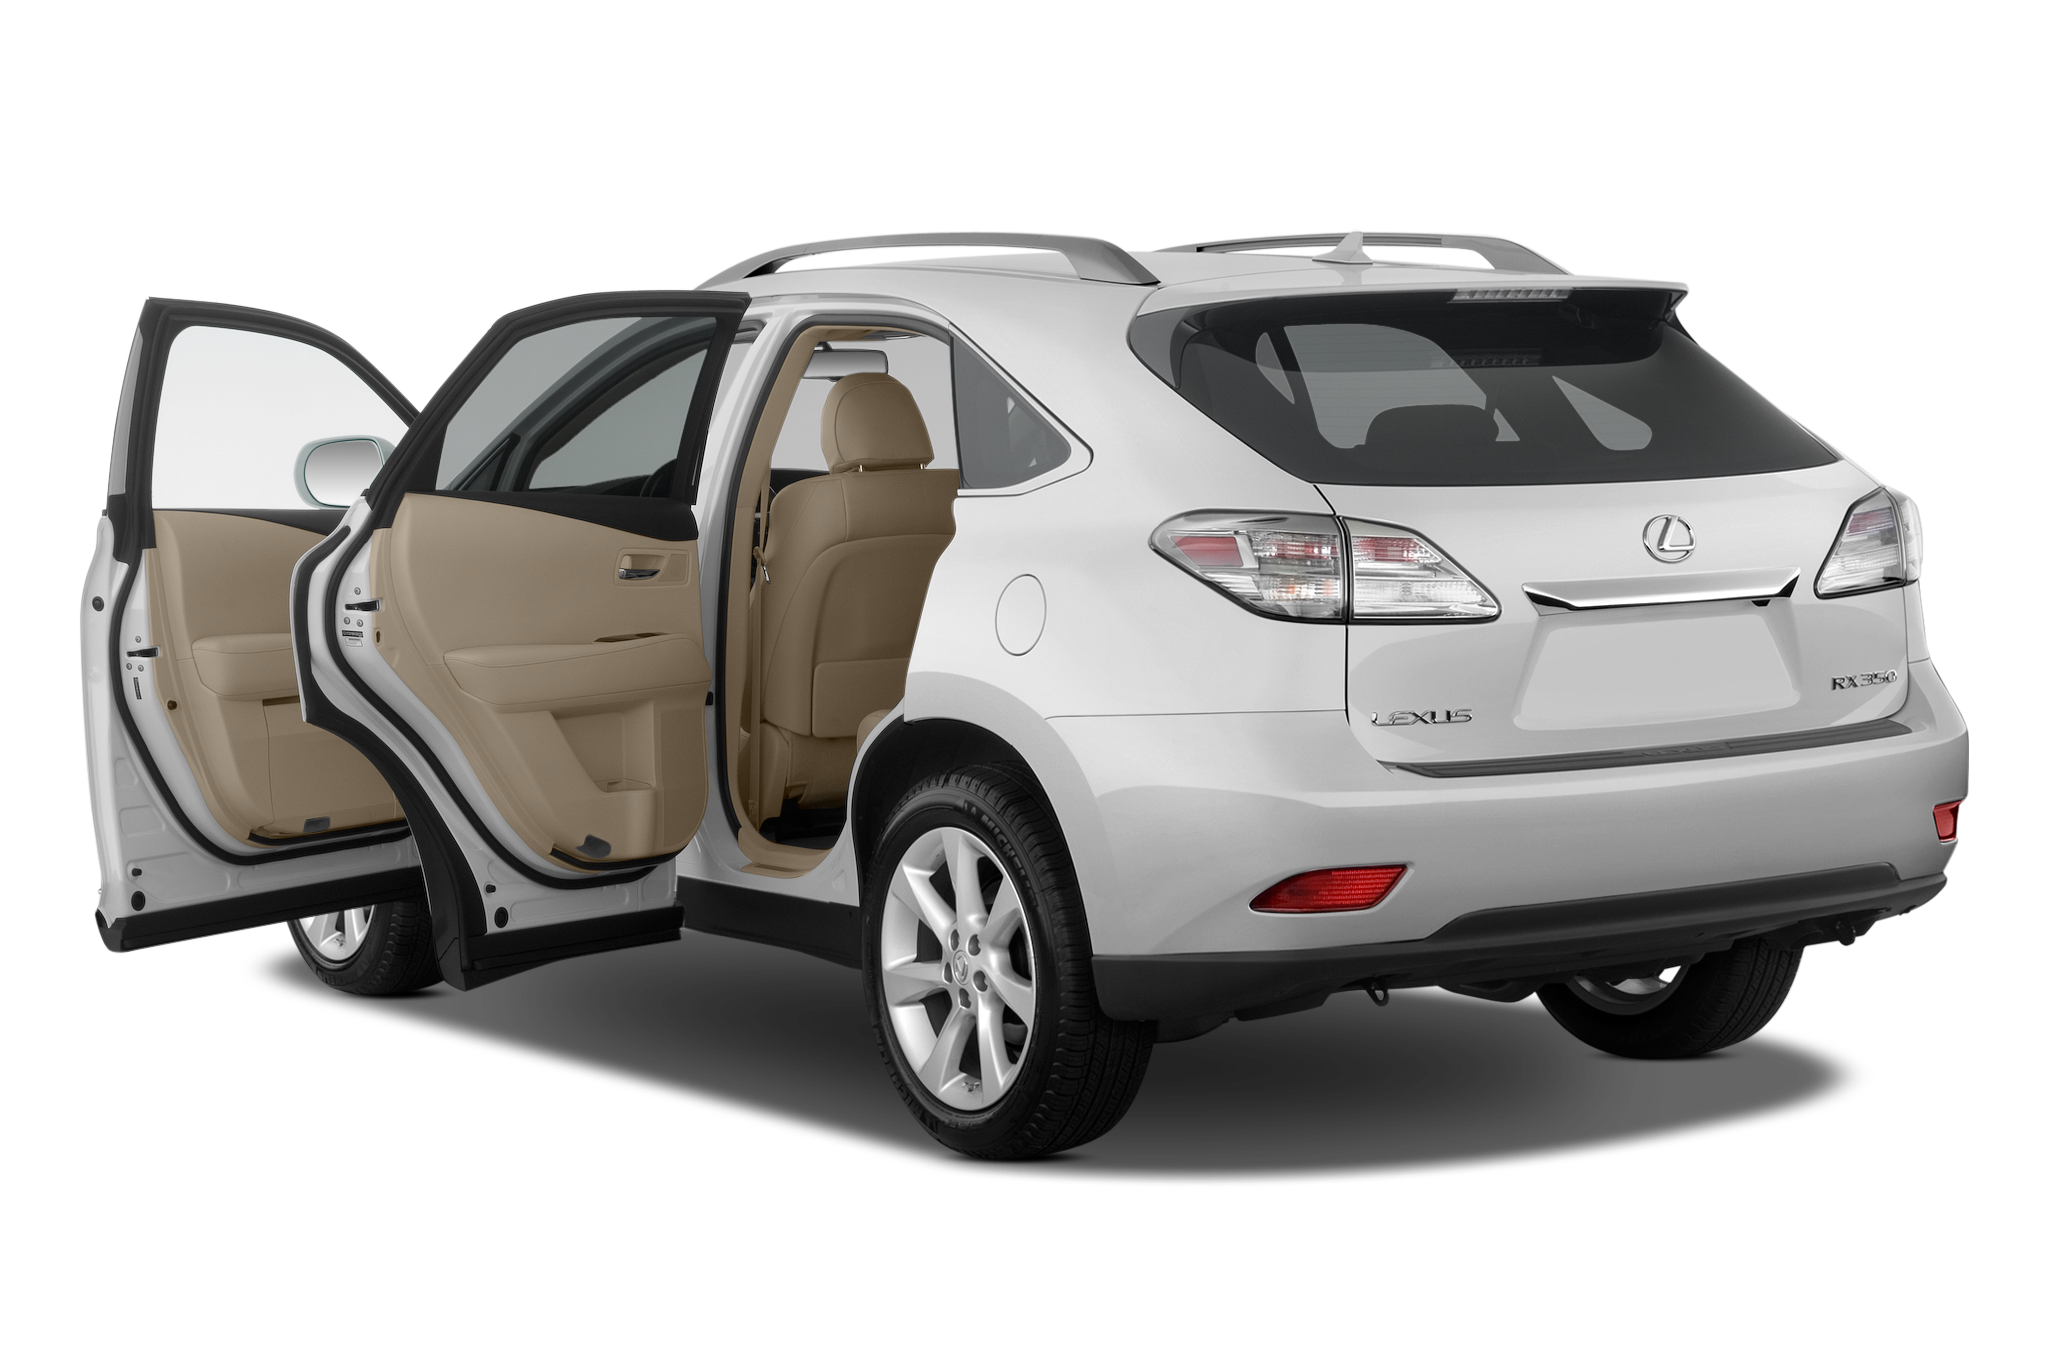 2010 lexus rx350 lexus luxury crossover suv review automobile magazine. Black Bedroom Furniture Sets. Home Design Ideas